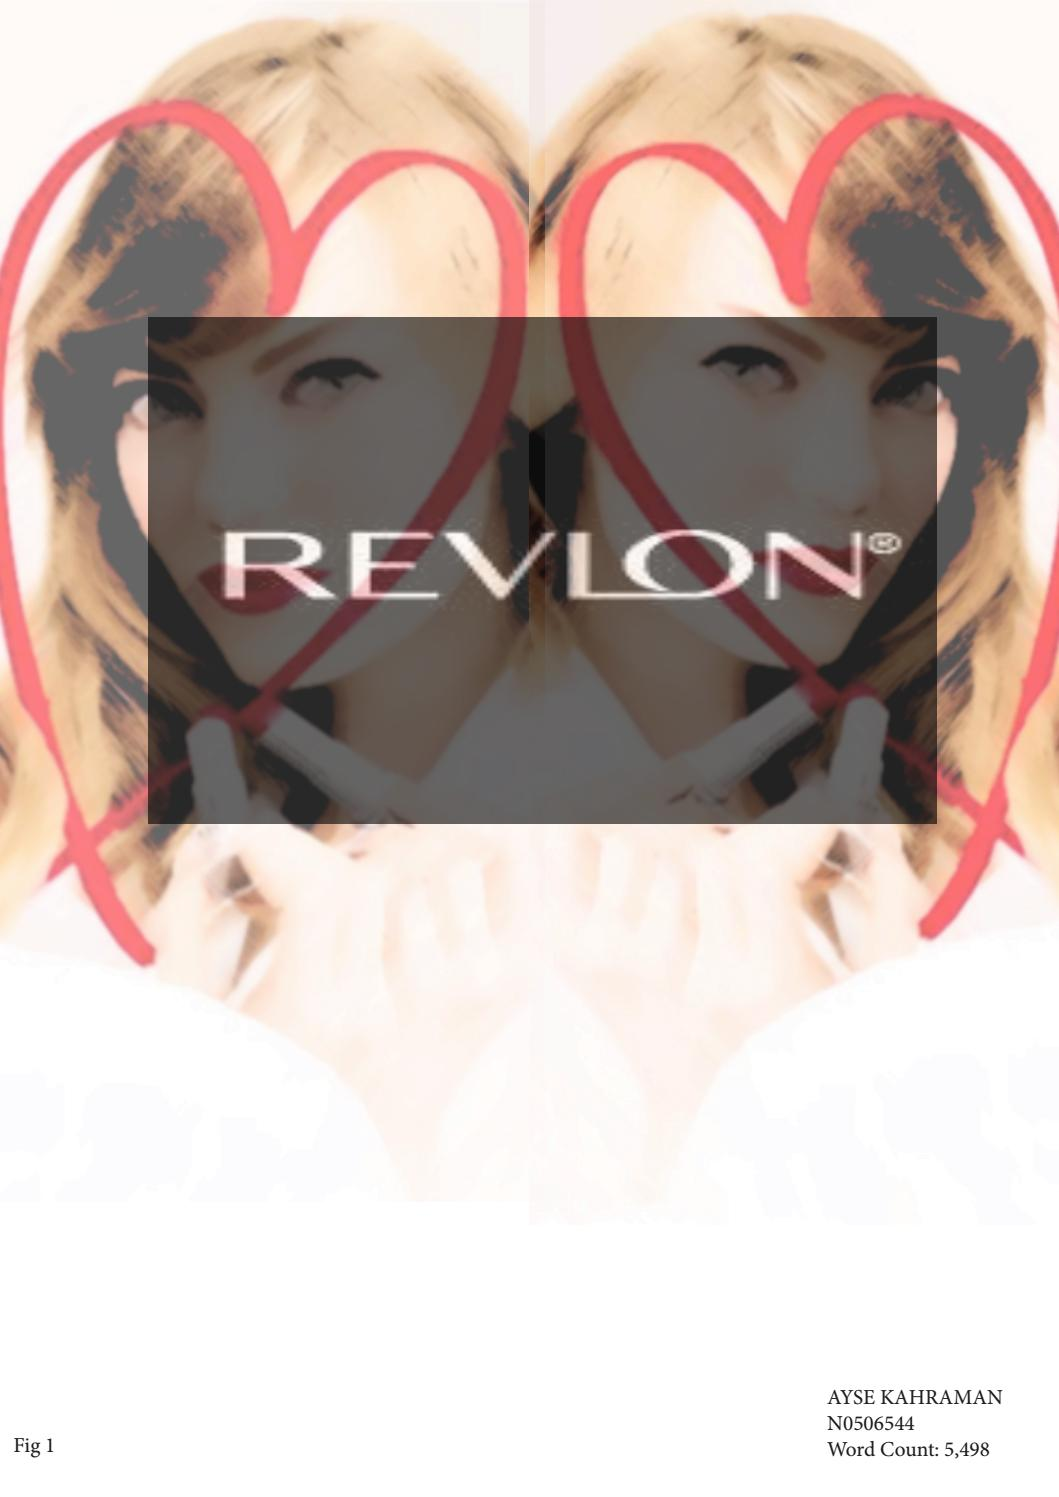 mission and vision of revlon costmetic Revlon is an american cosmetics, skin care, iragrance, and personal care  revlon`s mission statement is too narrow considering the corporate social.